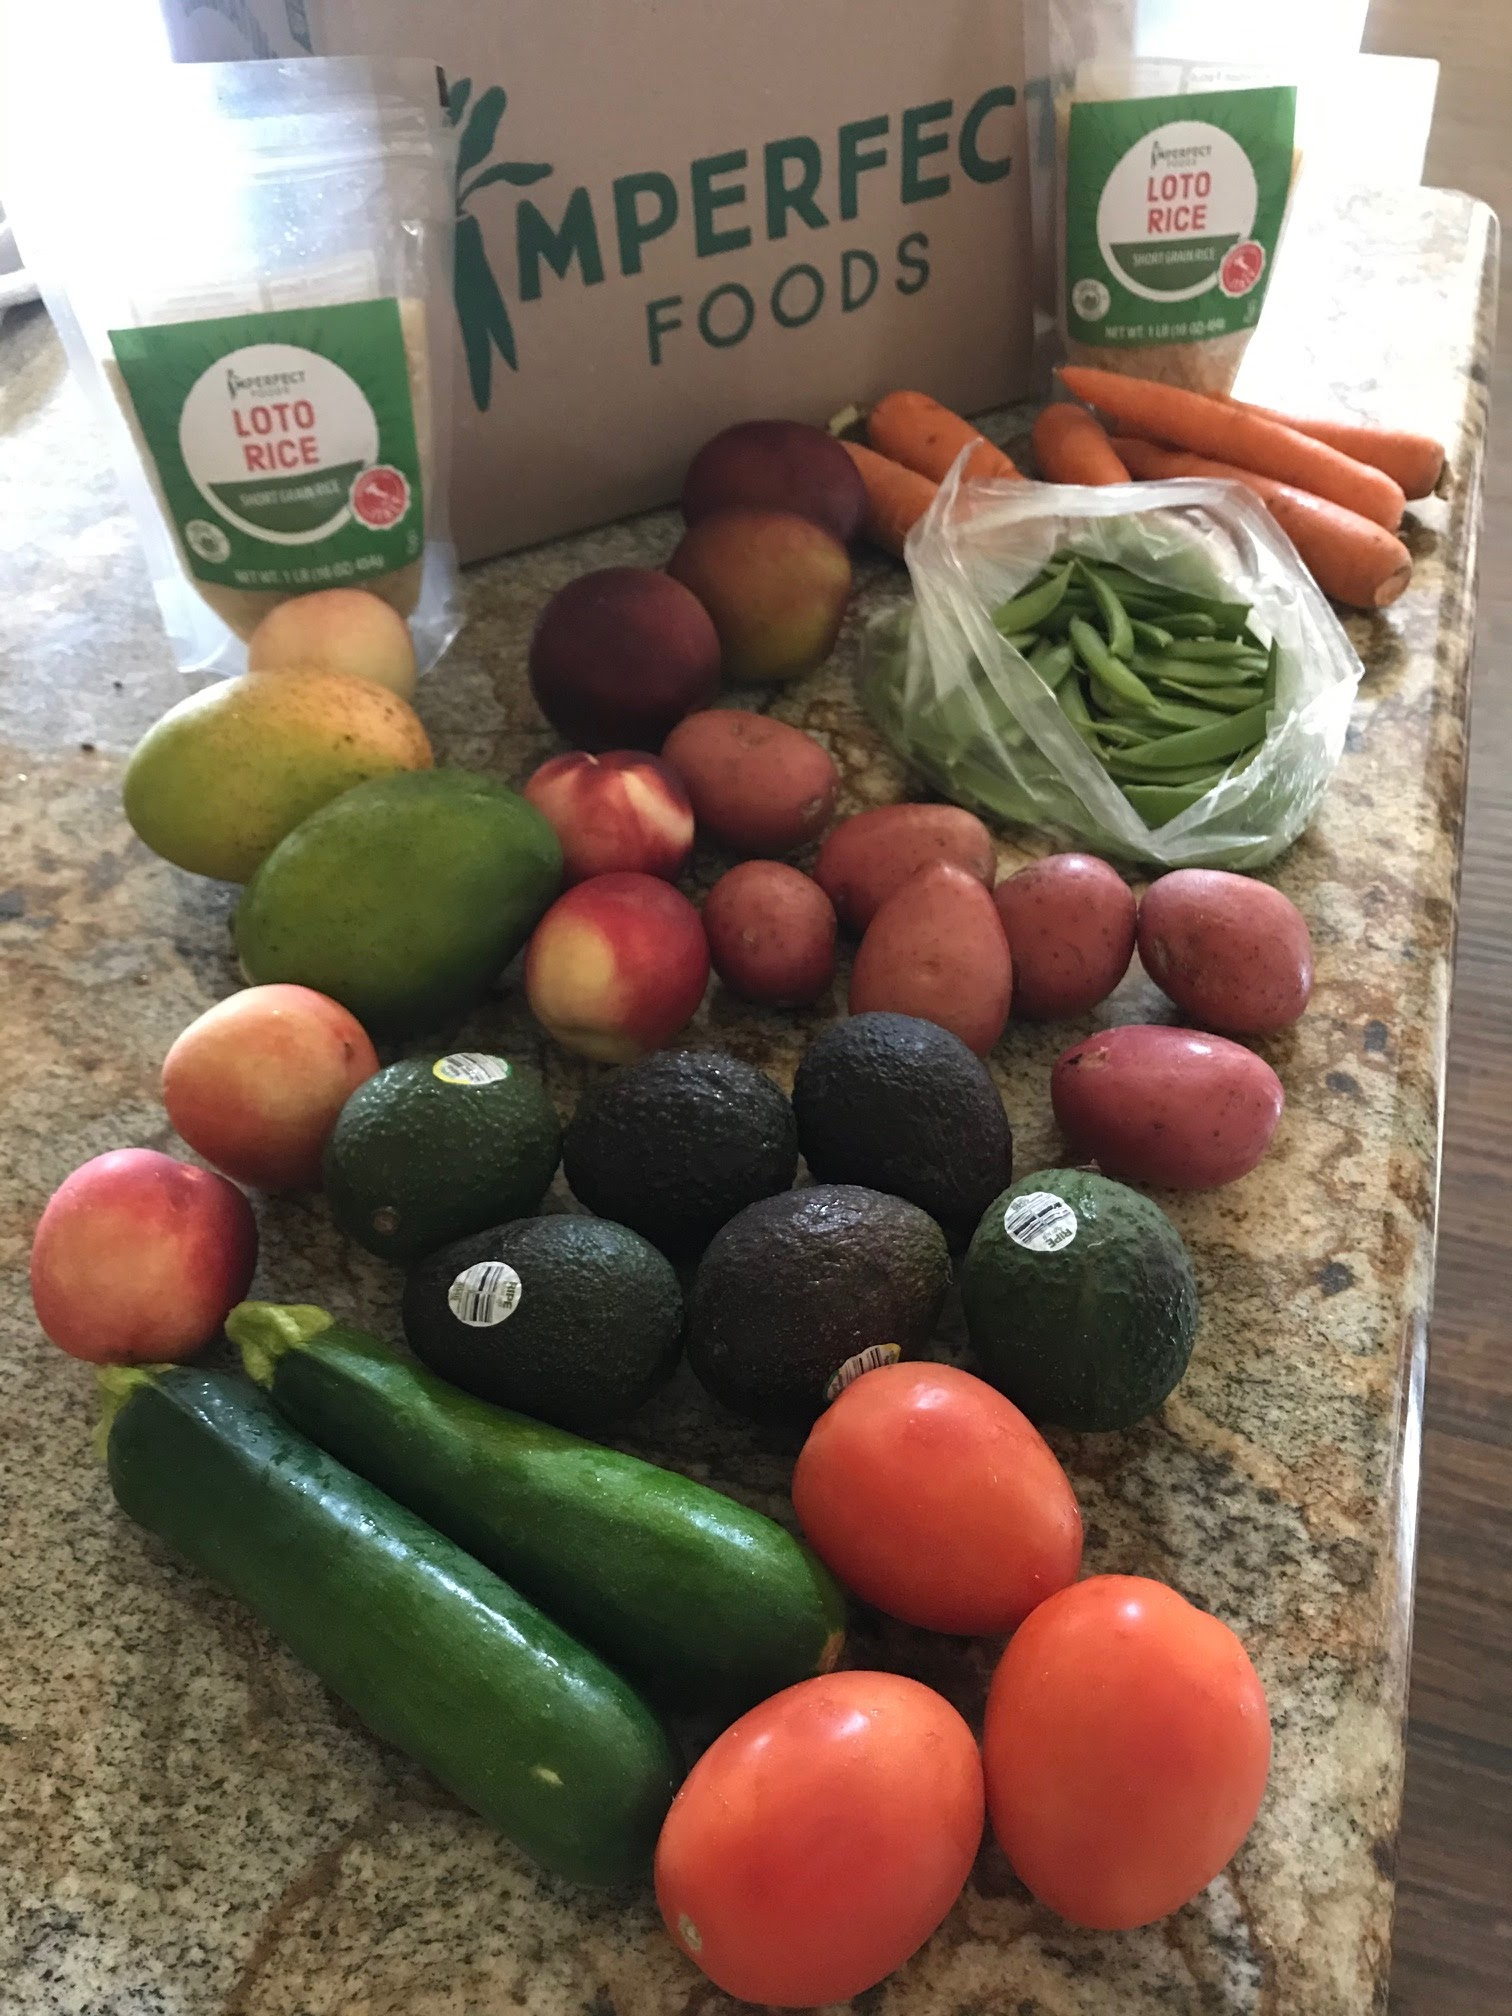 Dallas Mom Blog And Fort Worth Mom Blogger Trendy Mom Reviews A Review Of Imperfect Foods Limited Time 20 Off Coupon For Imperfect Foods